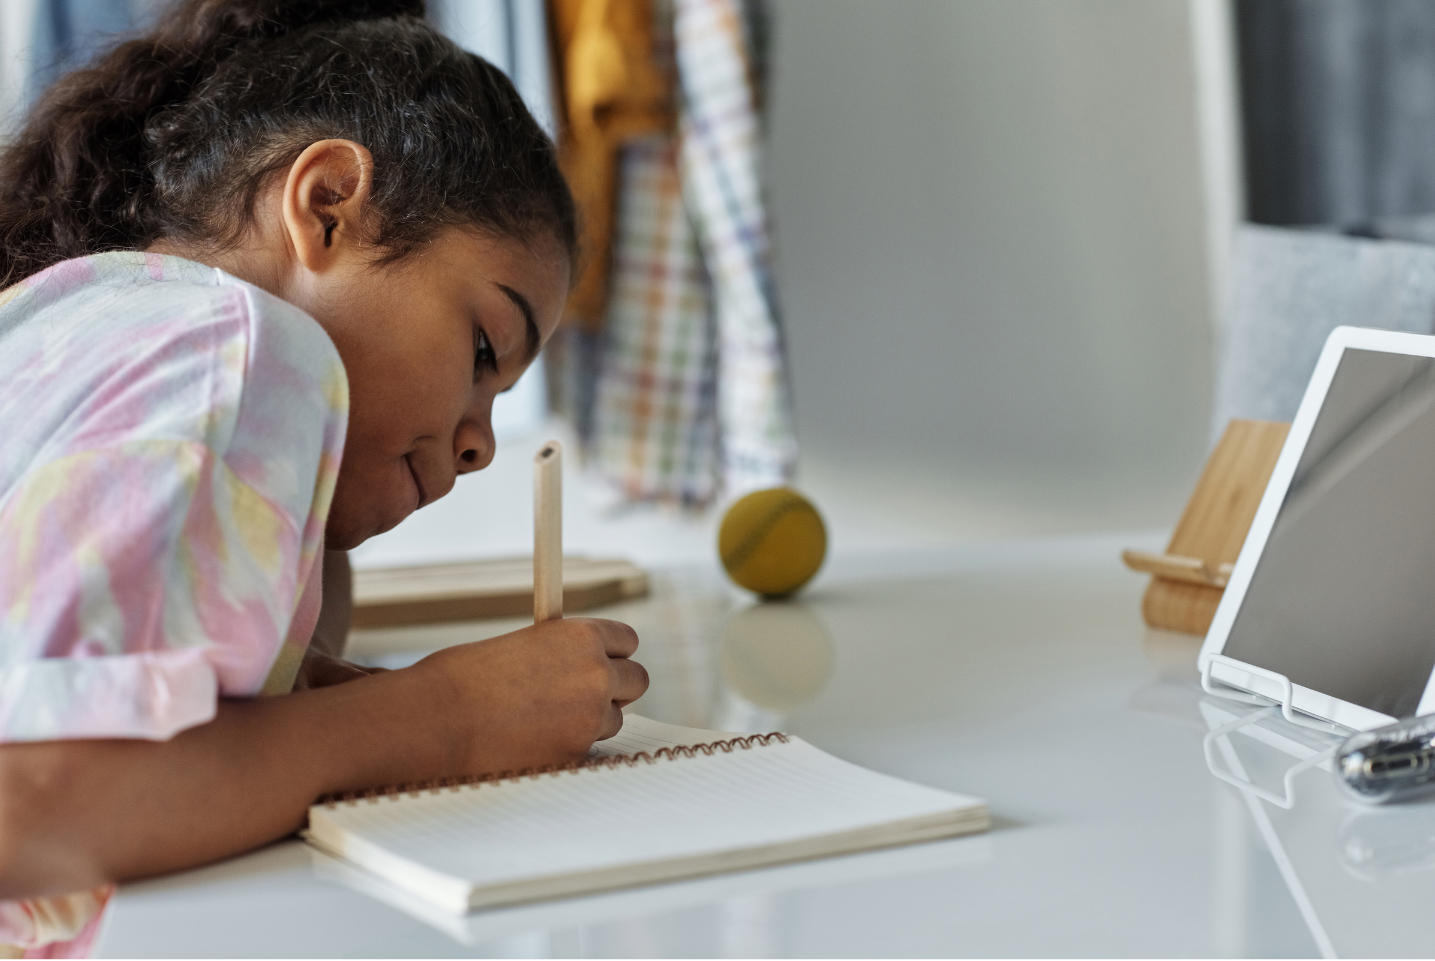 Child studying at a desk with a tablet device in front of her.